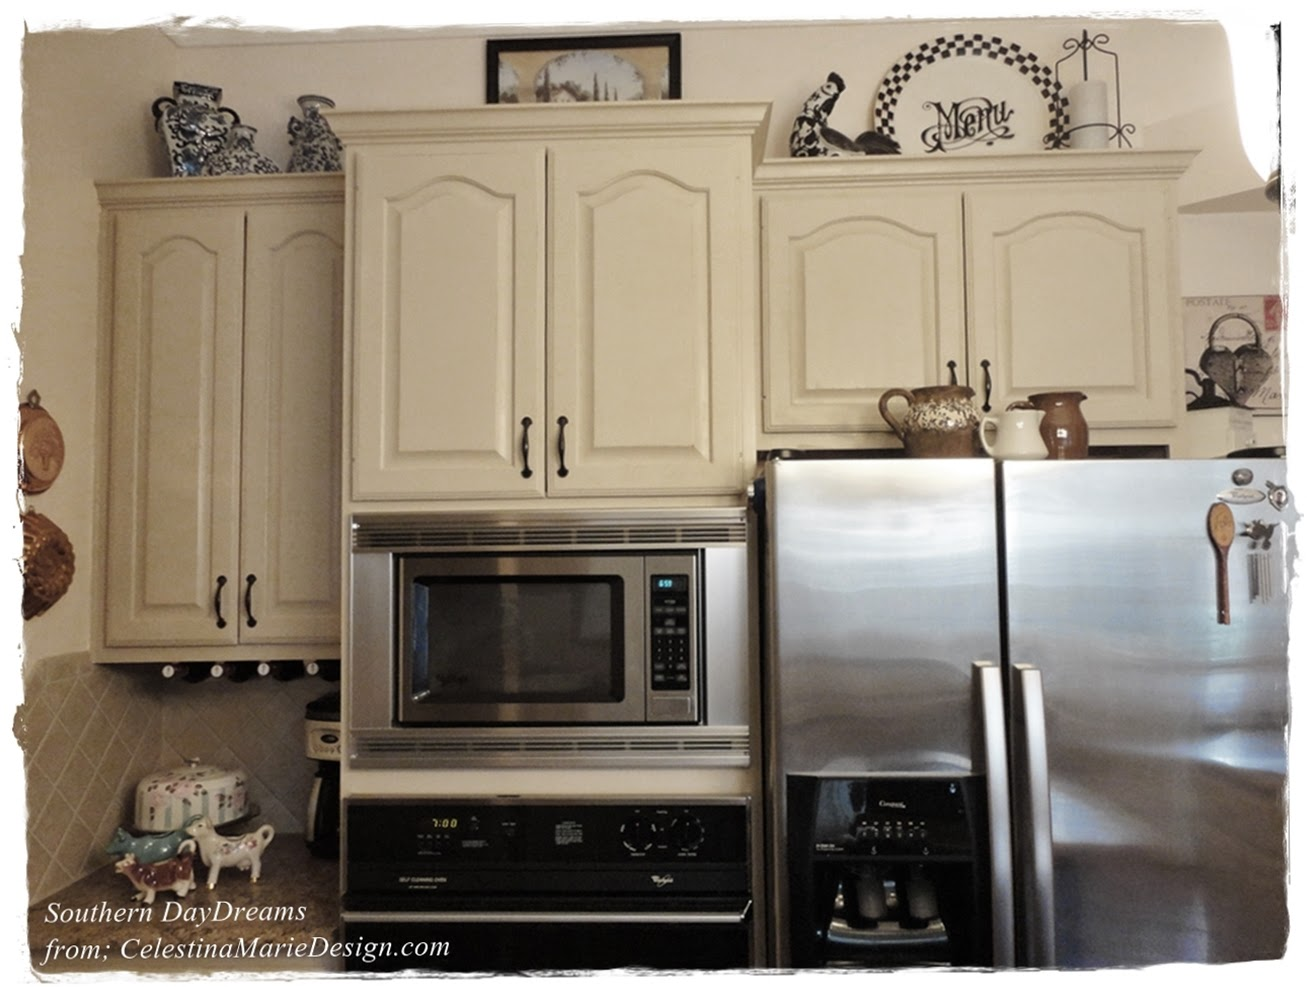 Painted Kitchen Cabinets~ Revealed! - Southern DayDreams